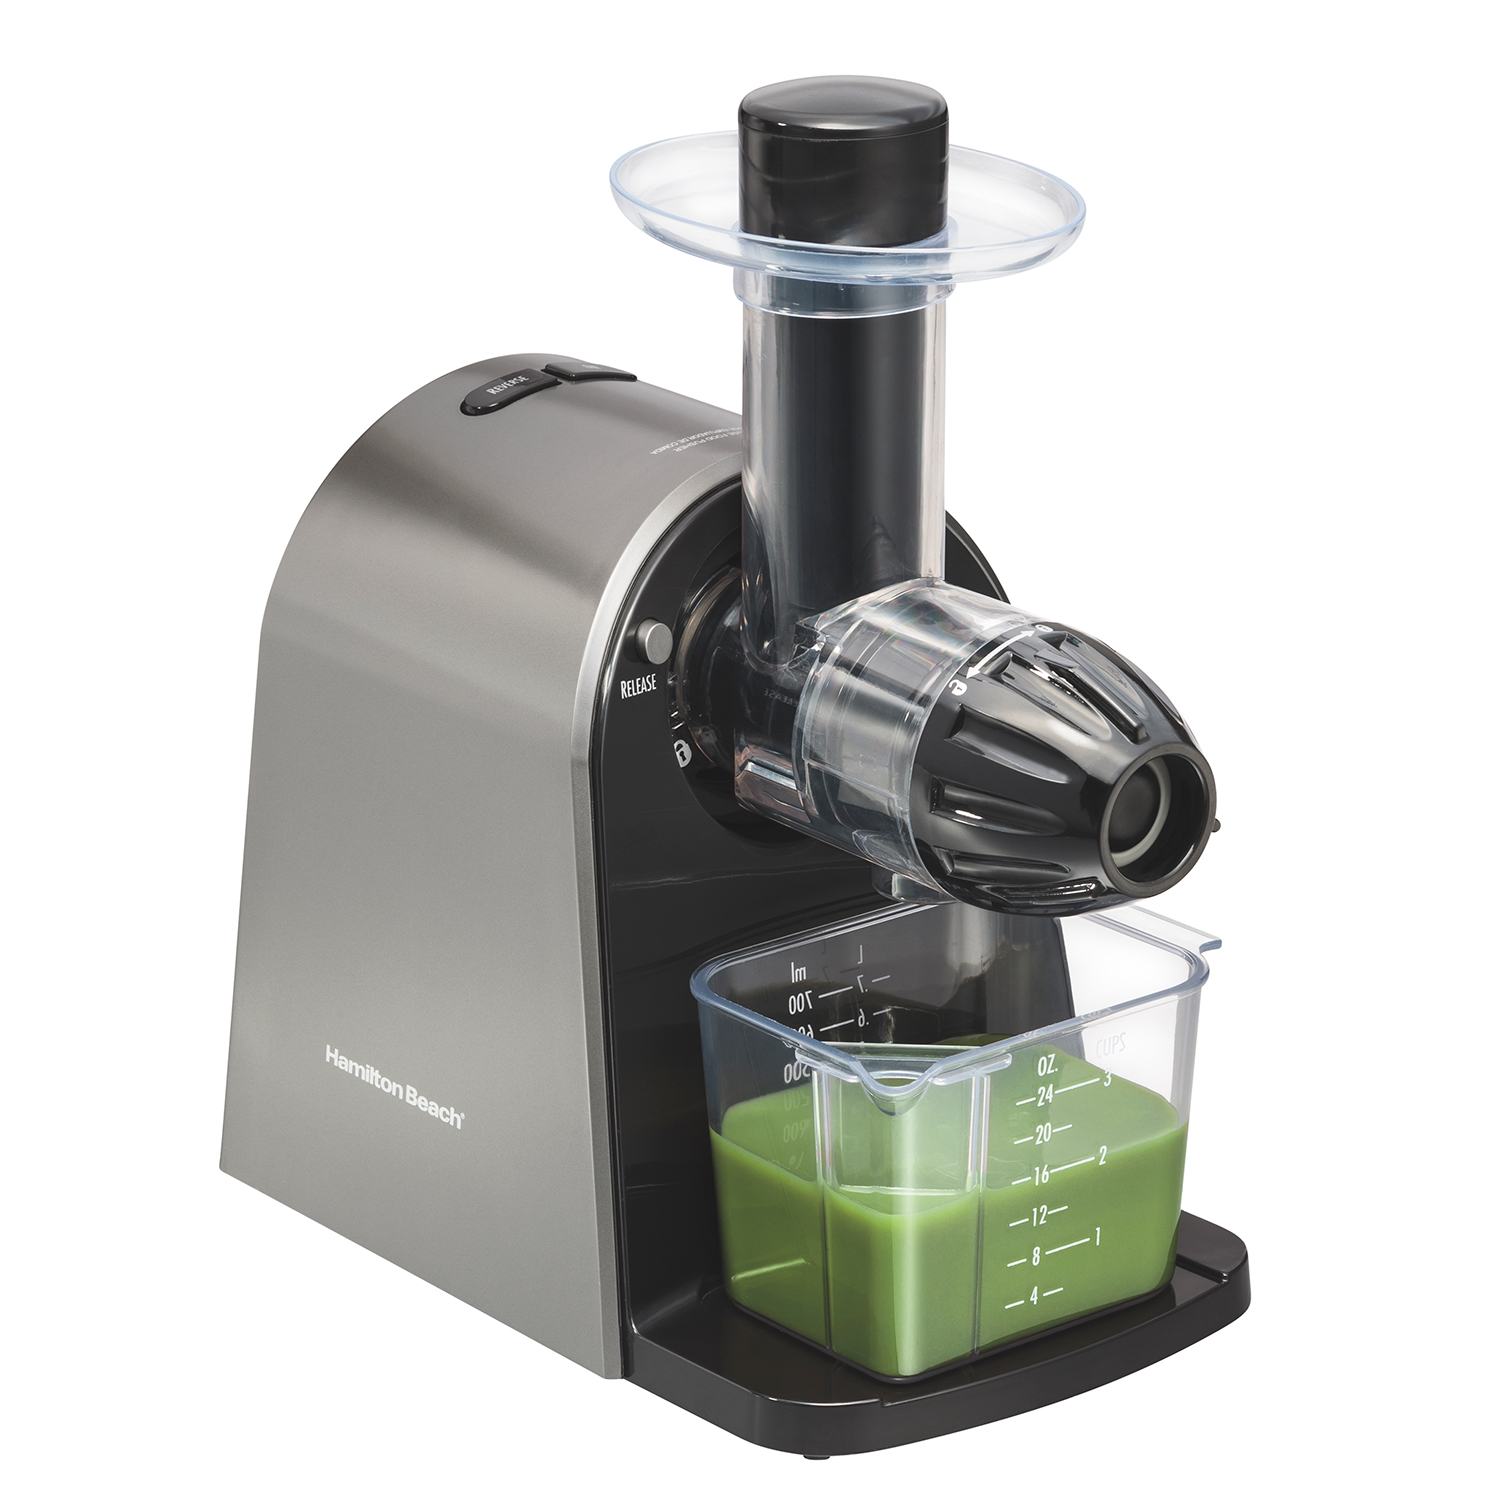 Cook And Baker Slow Juicer Test : Hamilton Beach Slow Juicer - 67951